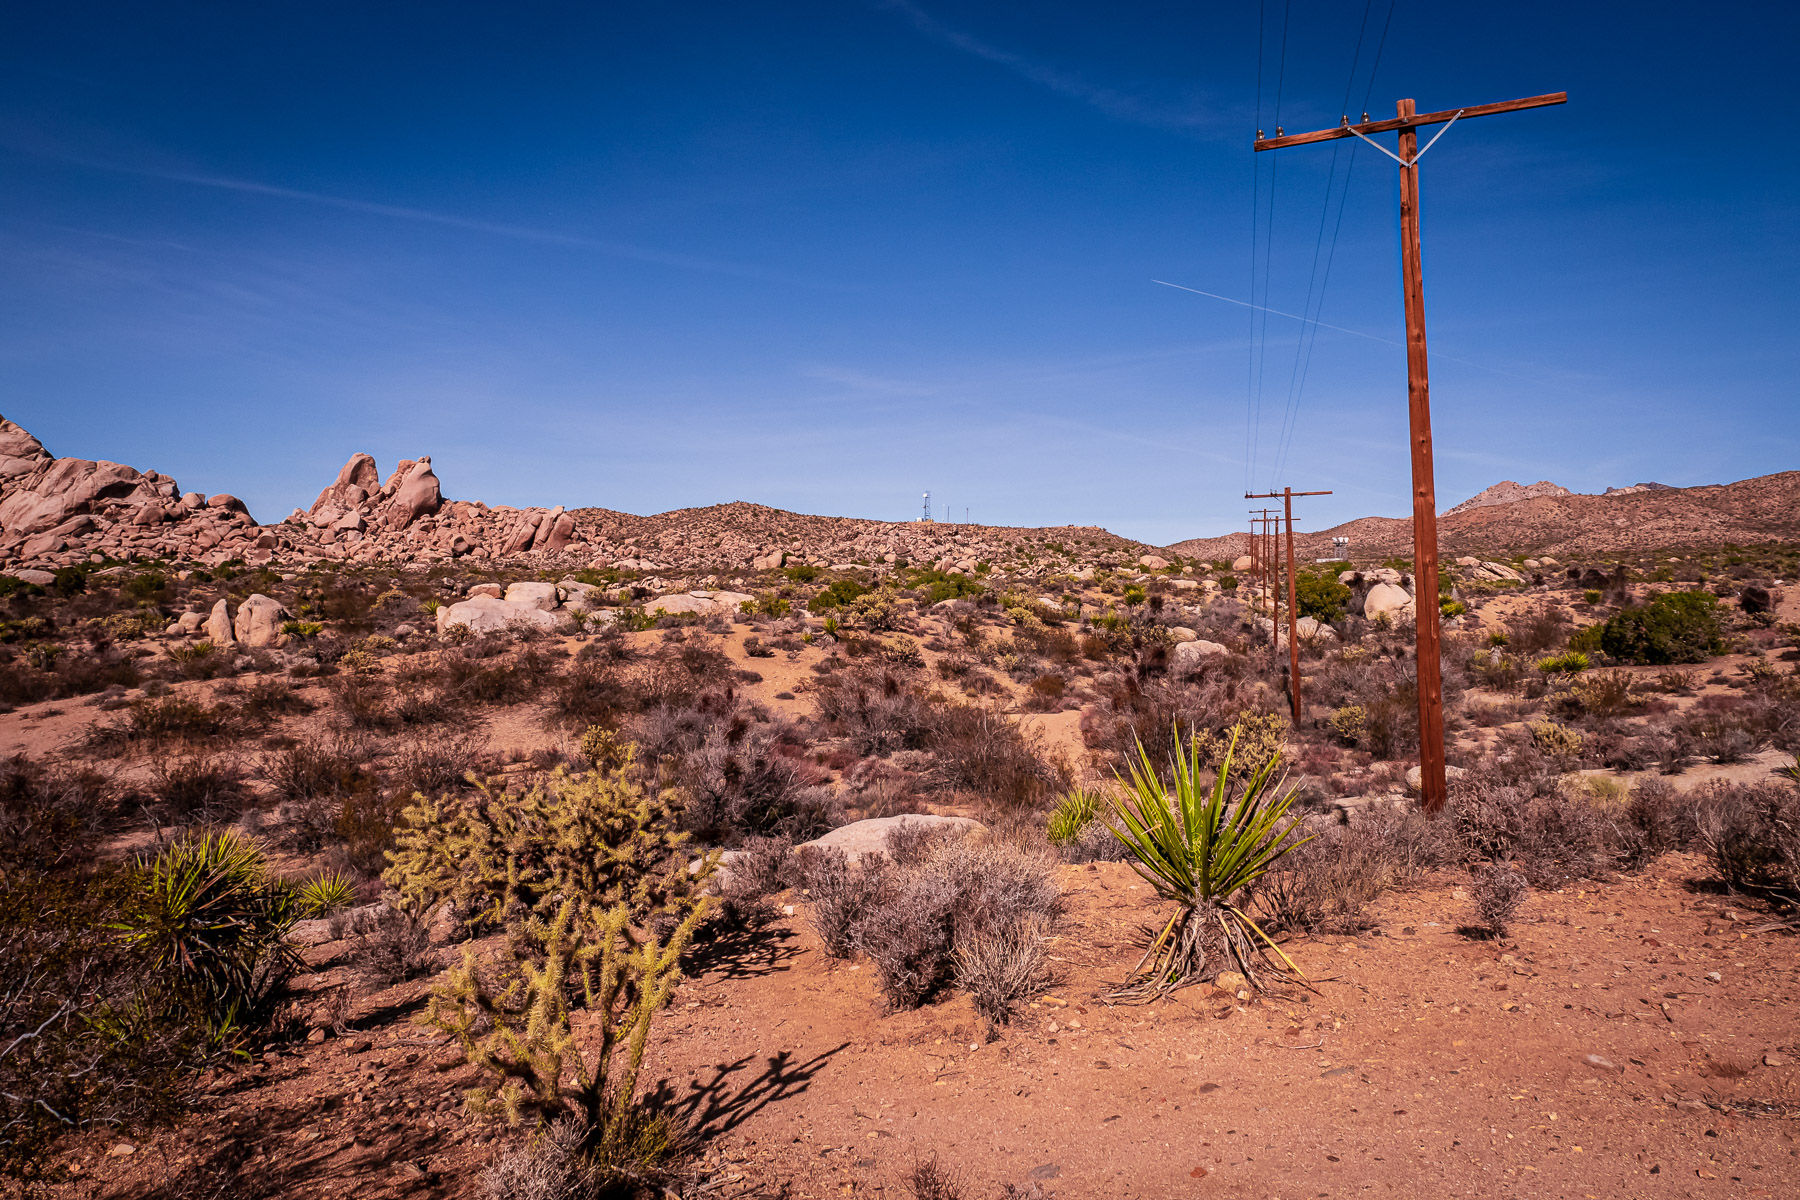 Electrical pylons cross the desert at Granite Pass, Mojave National Preserve, California.